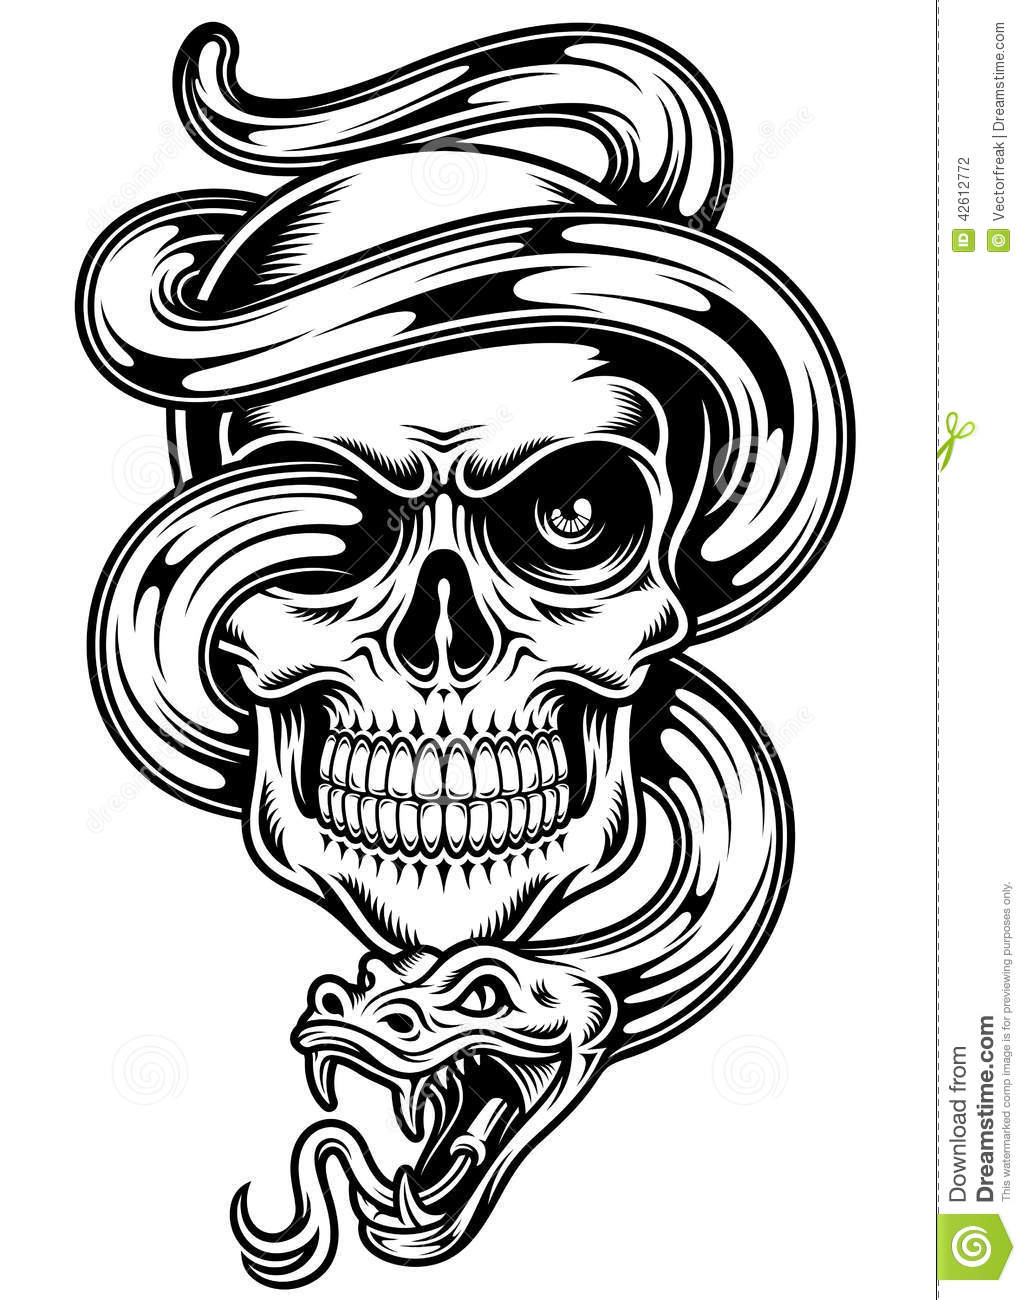 Fully editable vector illustration of skull with snake, image suitable ...